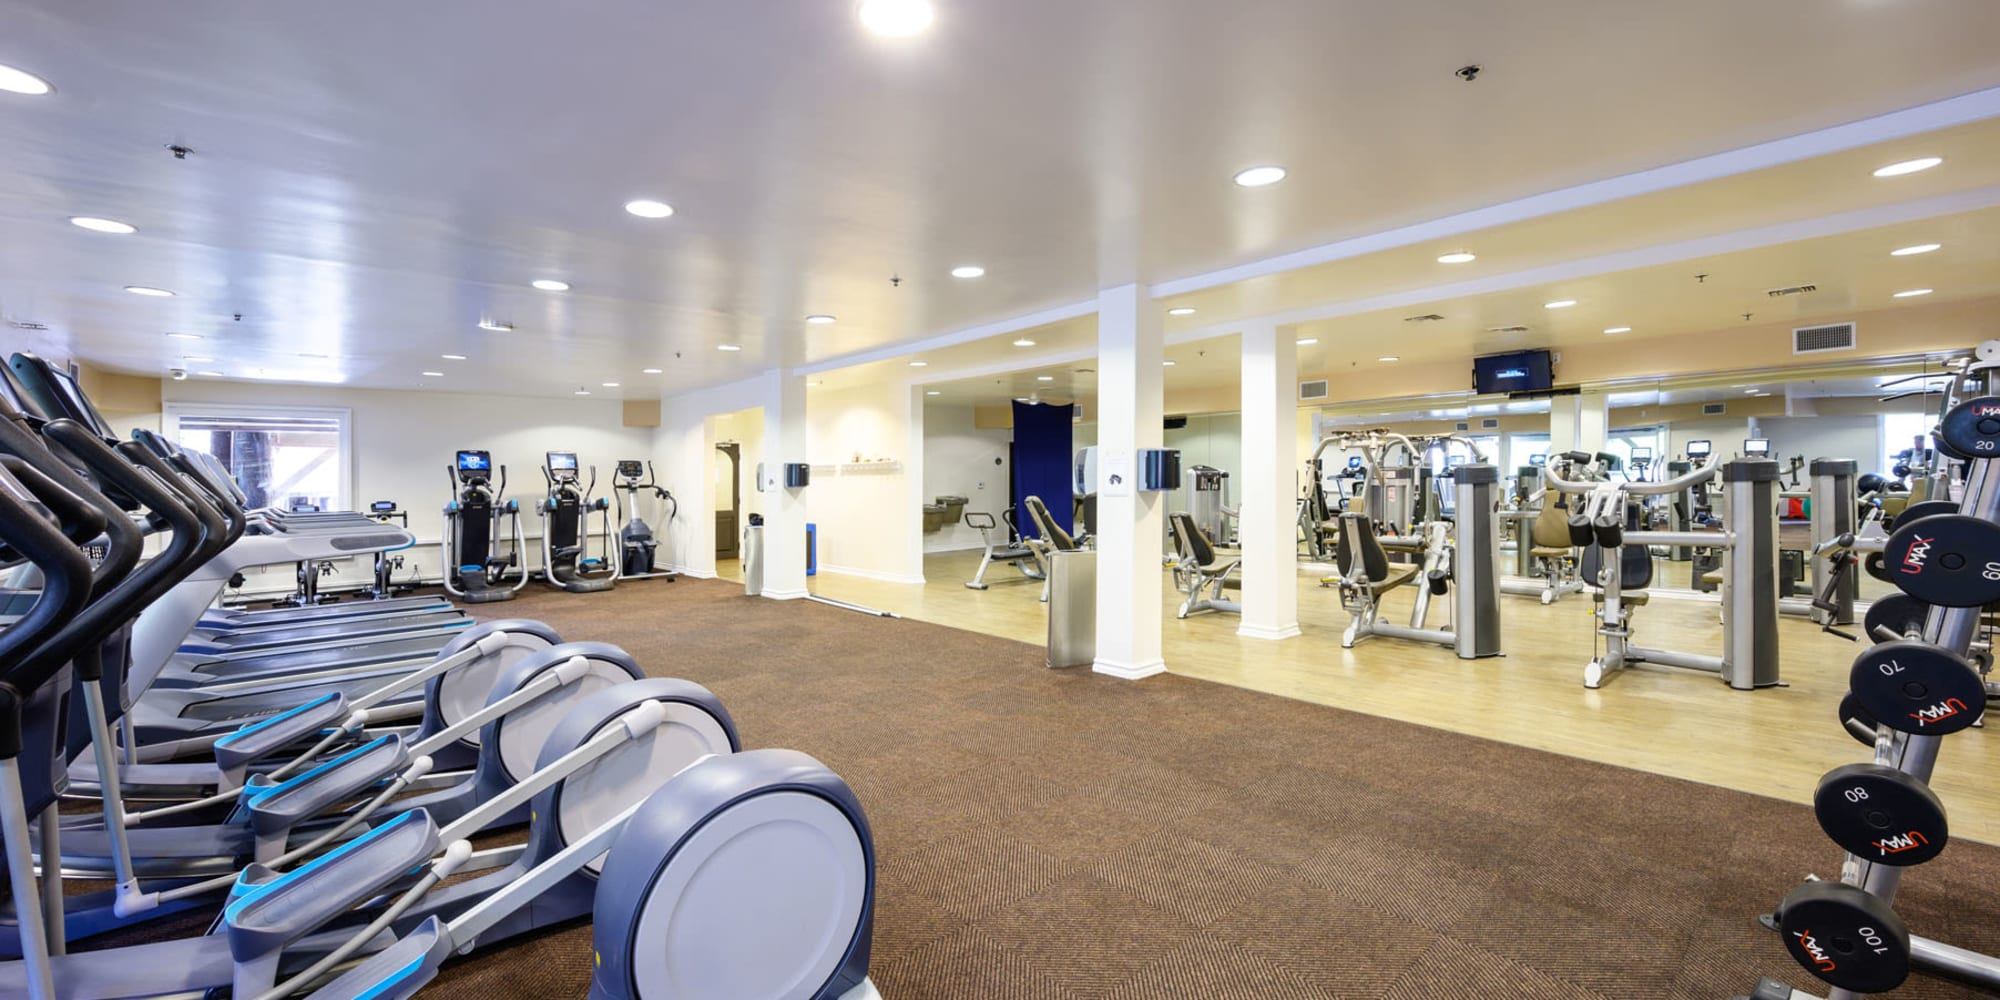 Large and very well-equipped fitness center at Mariners Village in Marina del Rey, California